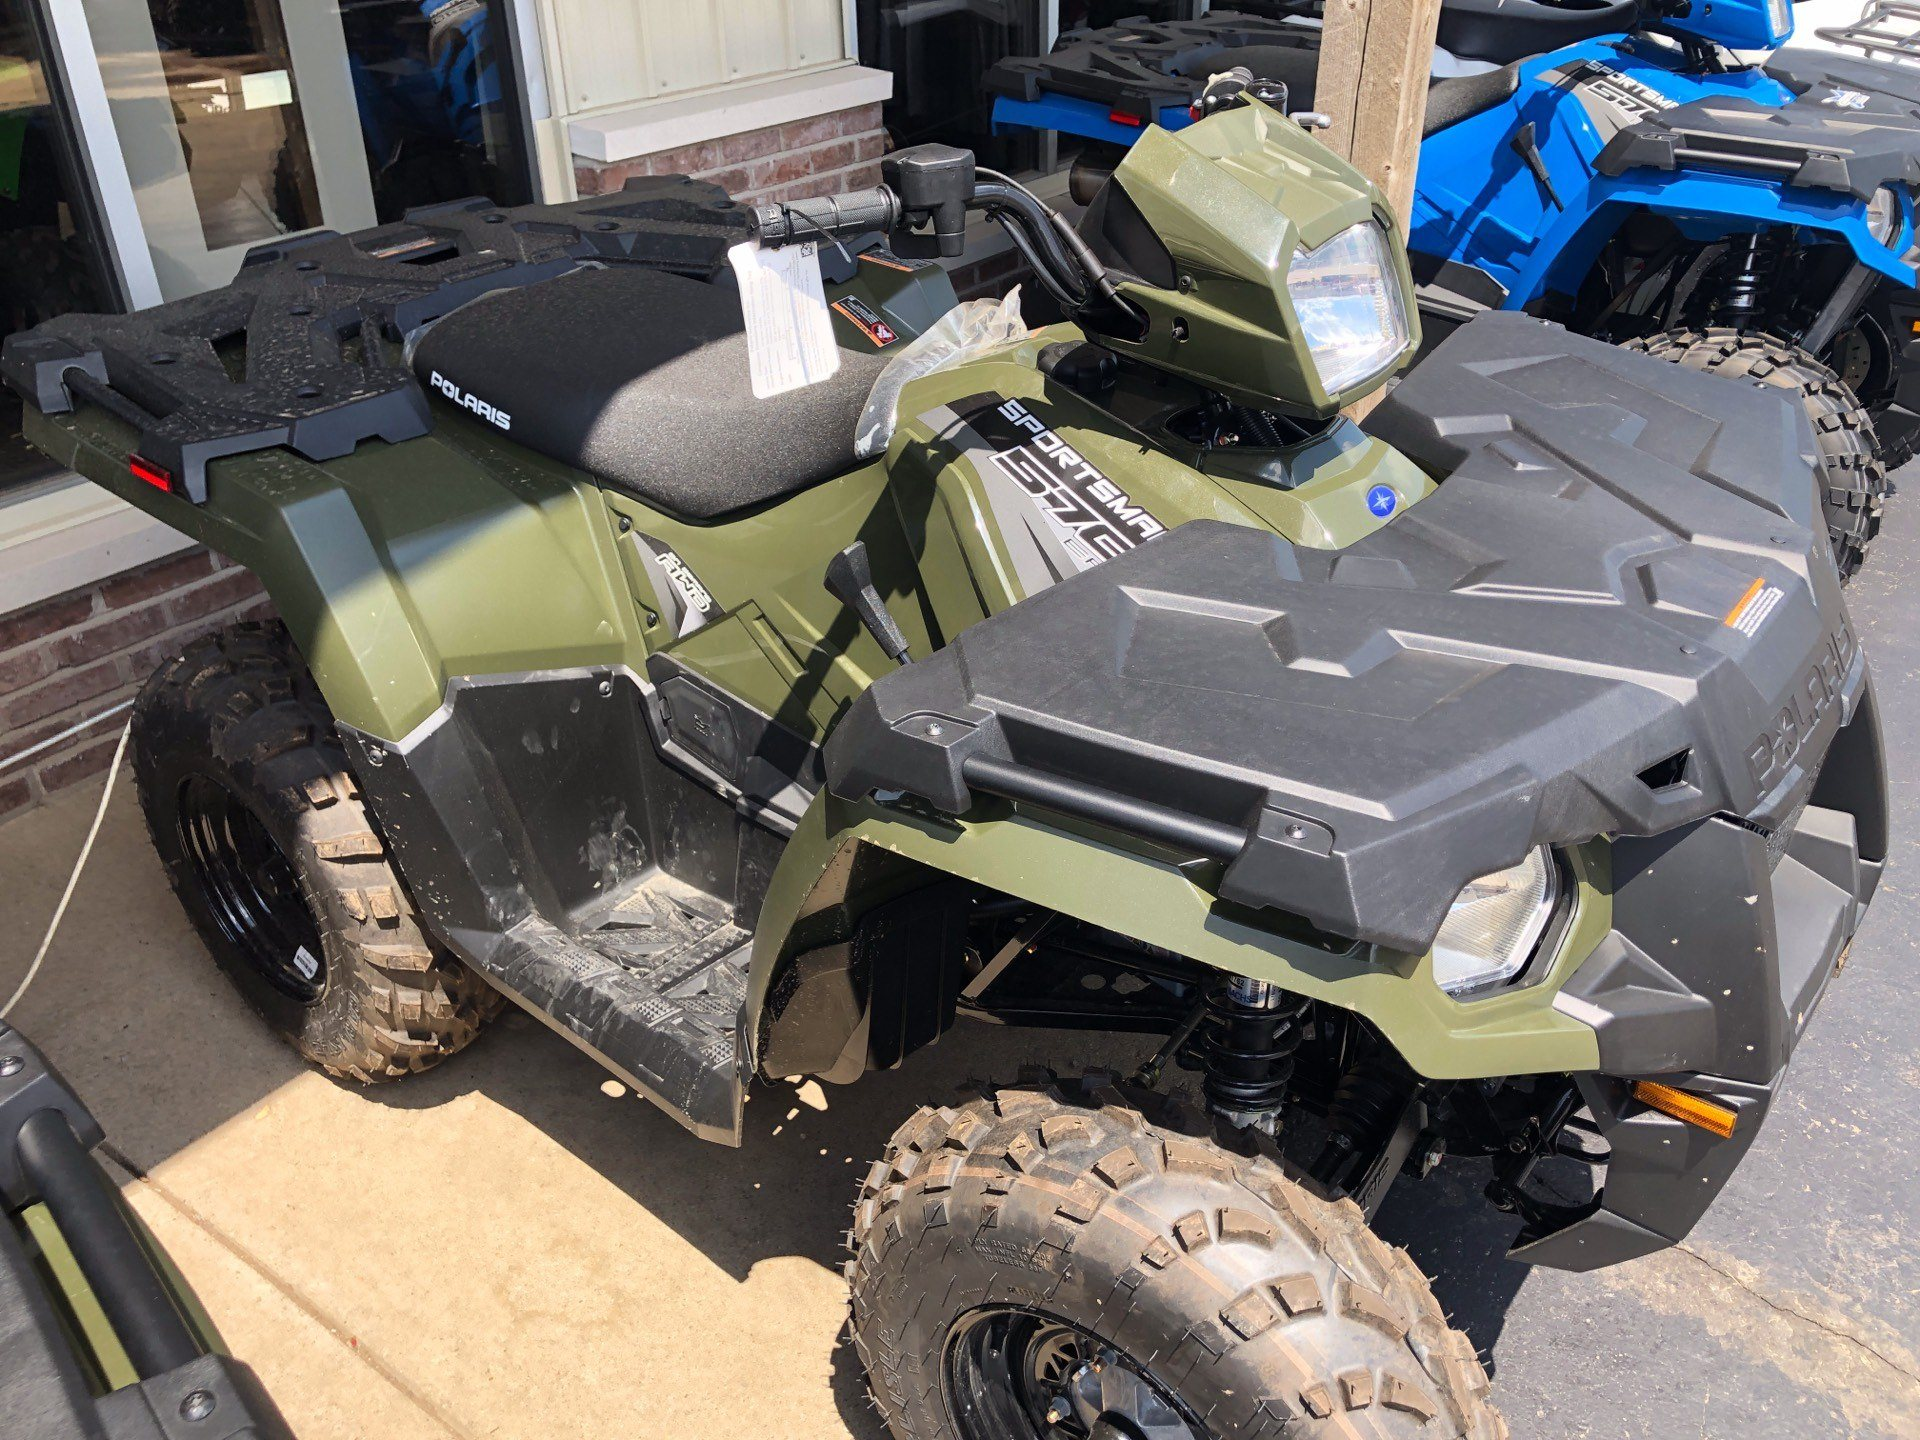 2019 Polaris Sportsman 570 in Farmington, Missouri - Photo 1